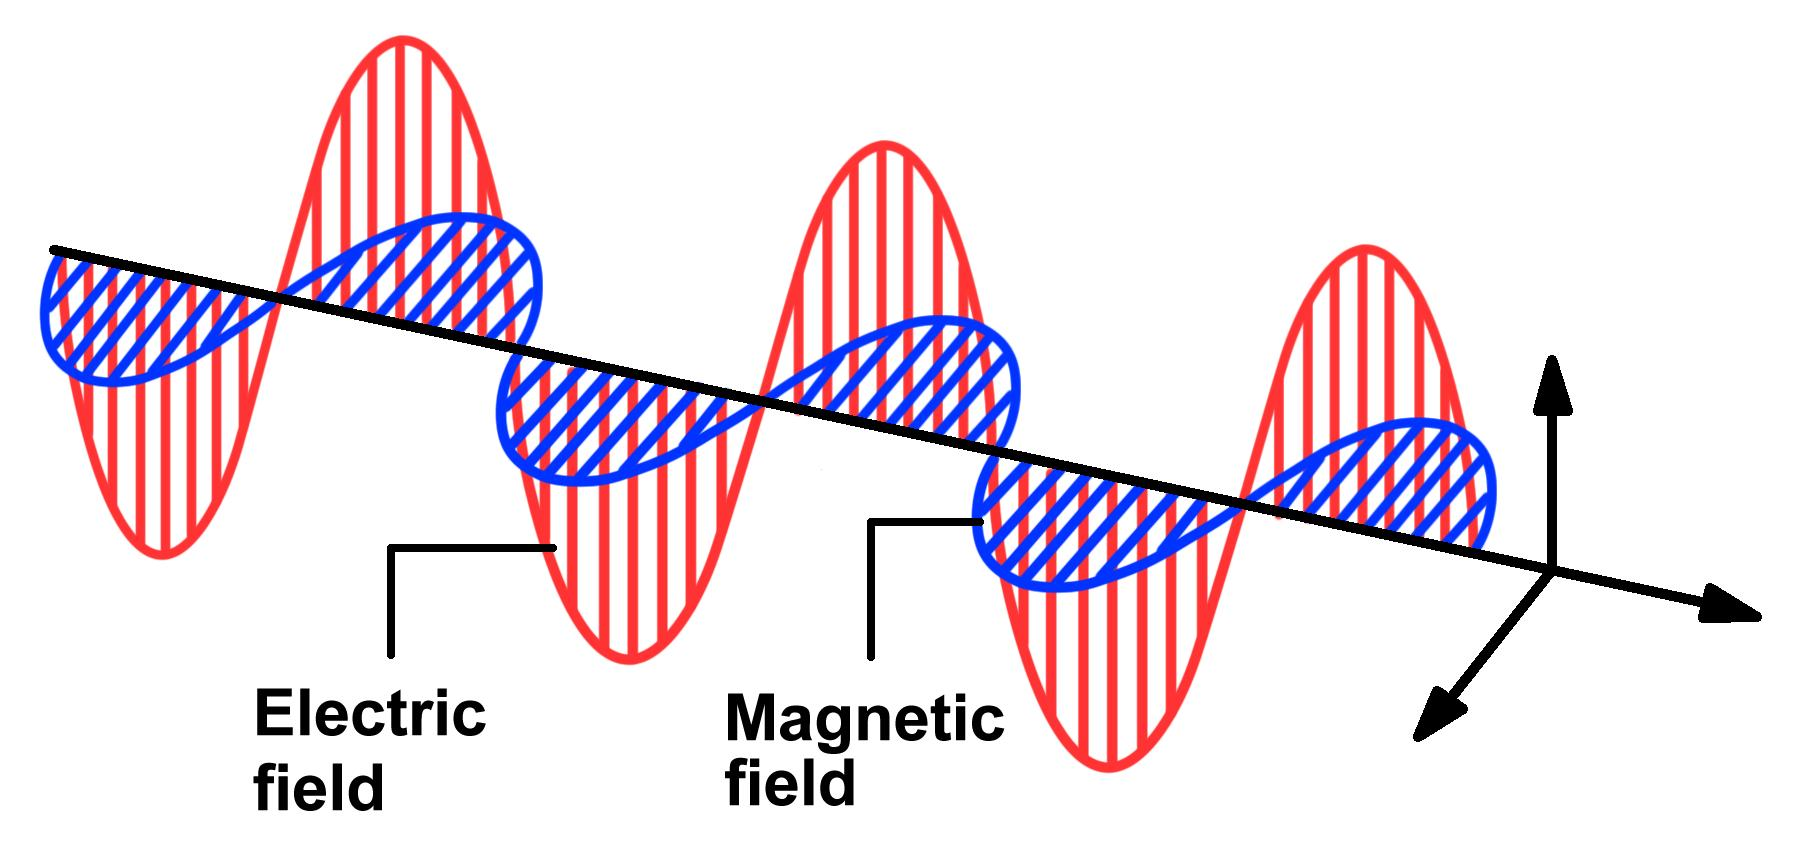 What Relationship Between Electric And Magnetic Fields